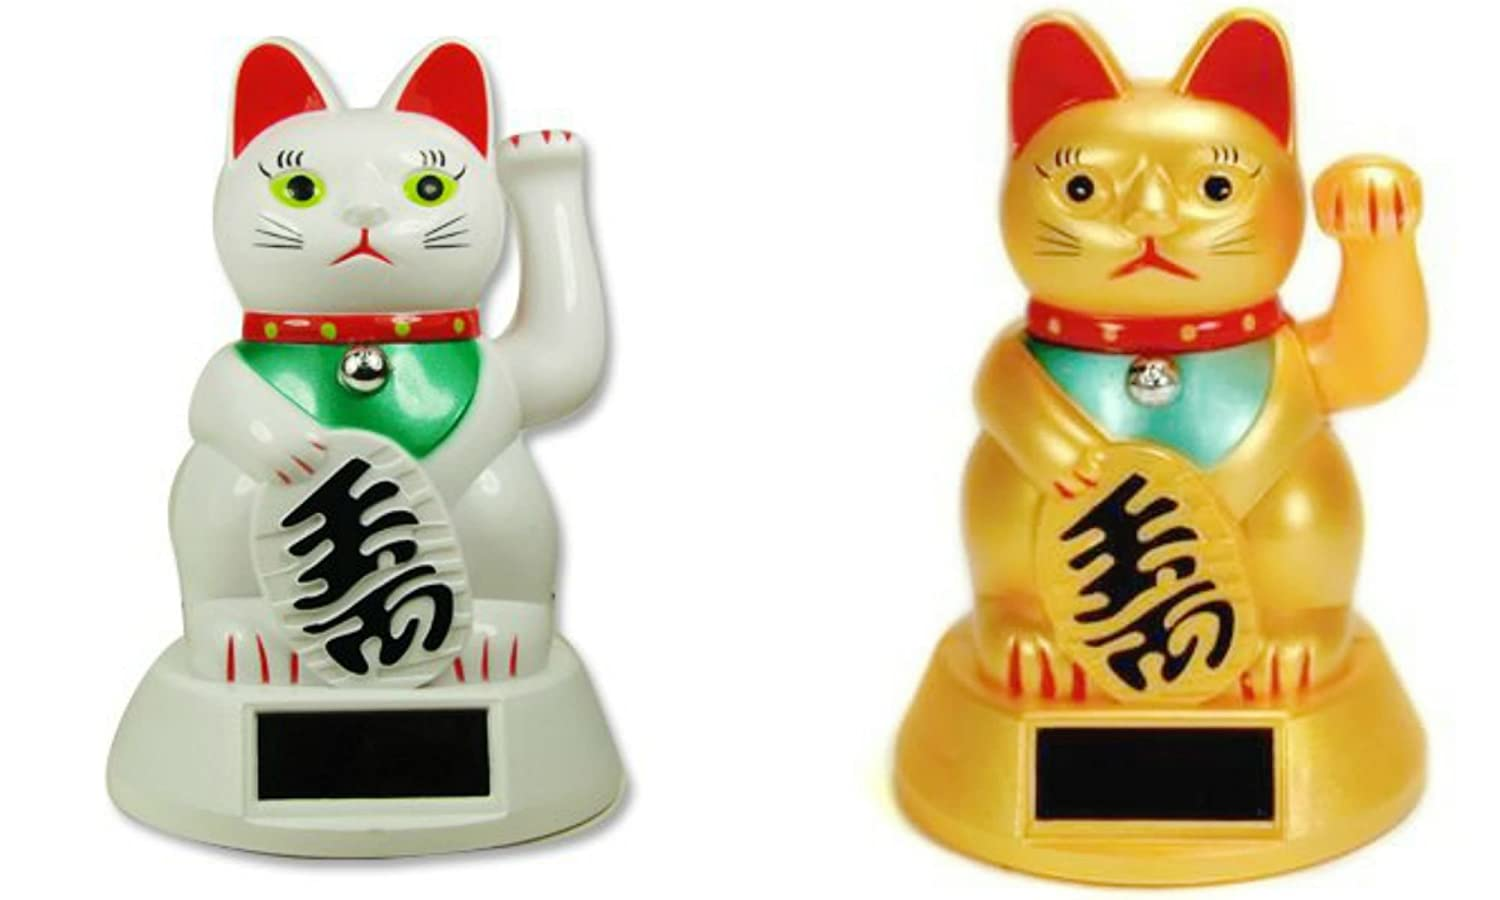 Solar Powered Lucky Beckoning Waving Cat Maneki Neko Bundle Set - A Pair of Yellow + White Colored Lucky Waving Cat by M.V. Trading Crafters